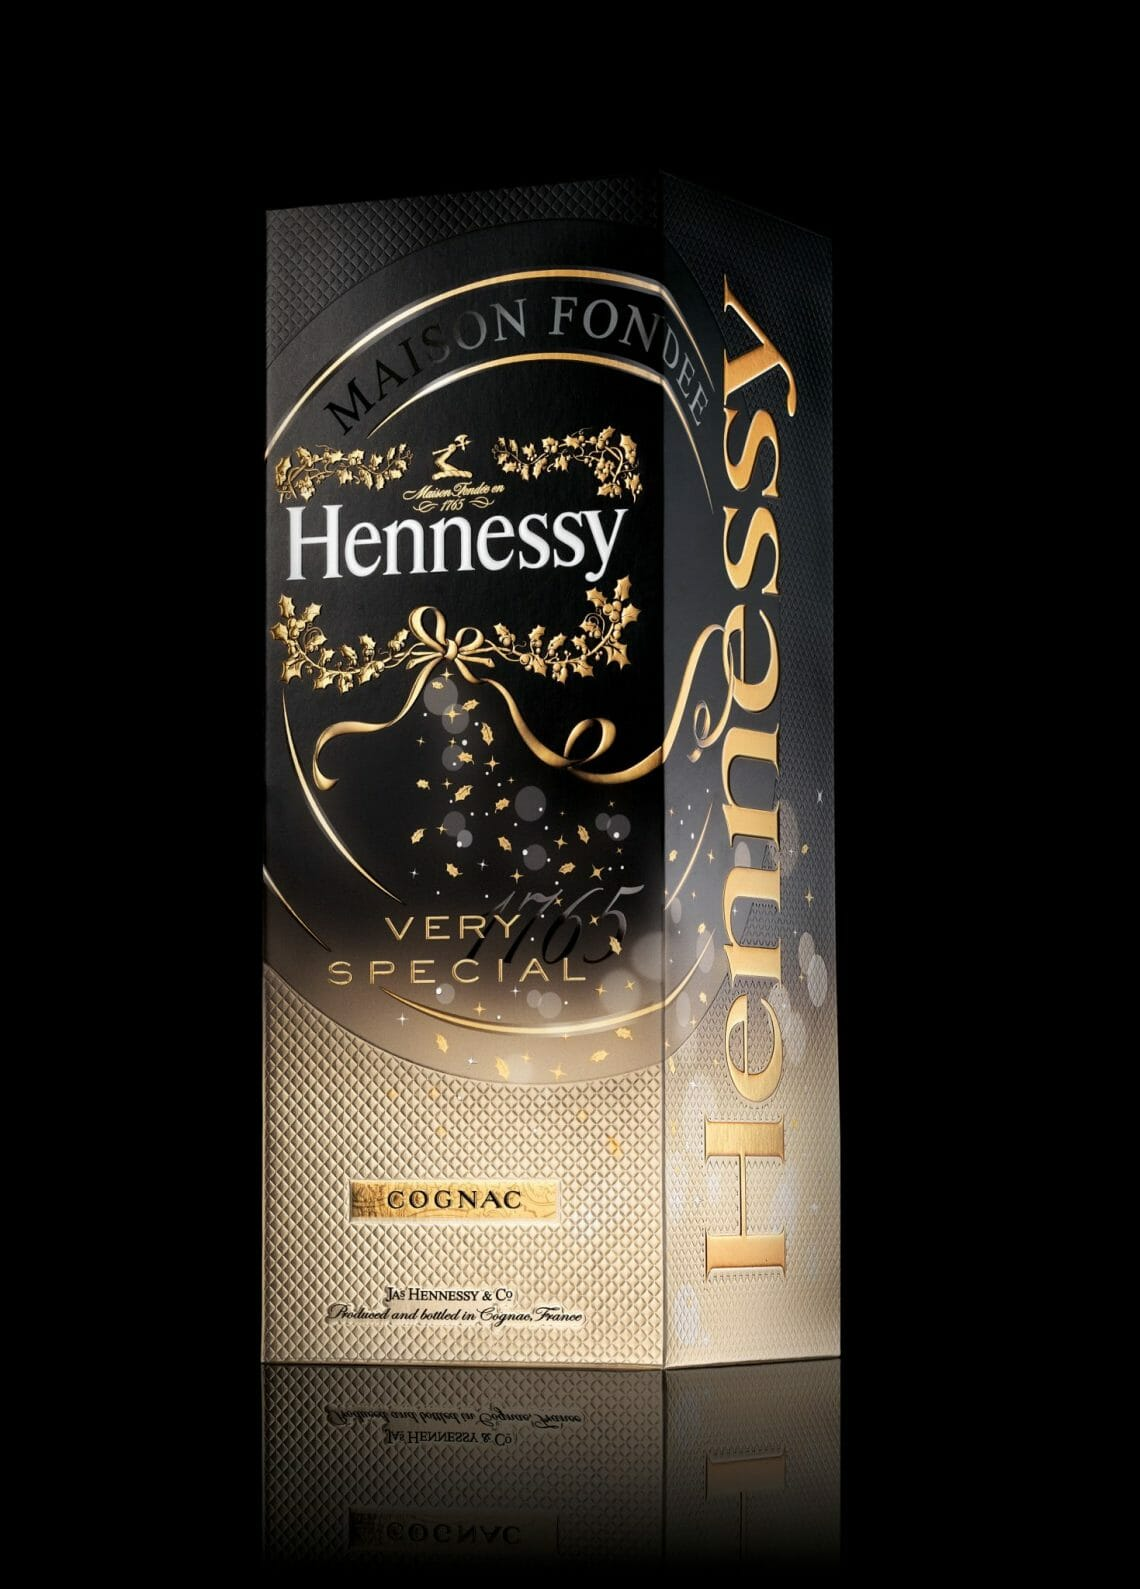 GIFT BOX FD NOIR RVB Hennessy Very Special Gift Packs Created by ButterflyCannon - EAT LOVE SAVOR International Luxury Lifestyle Magazine